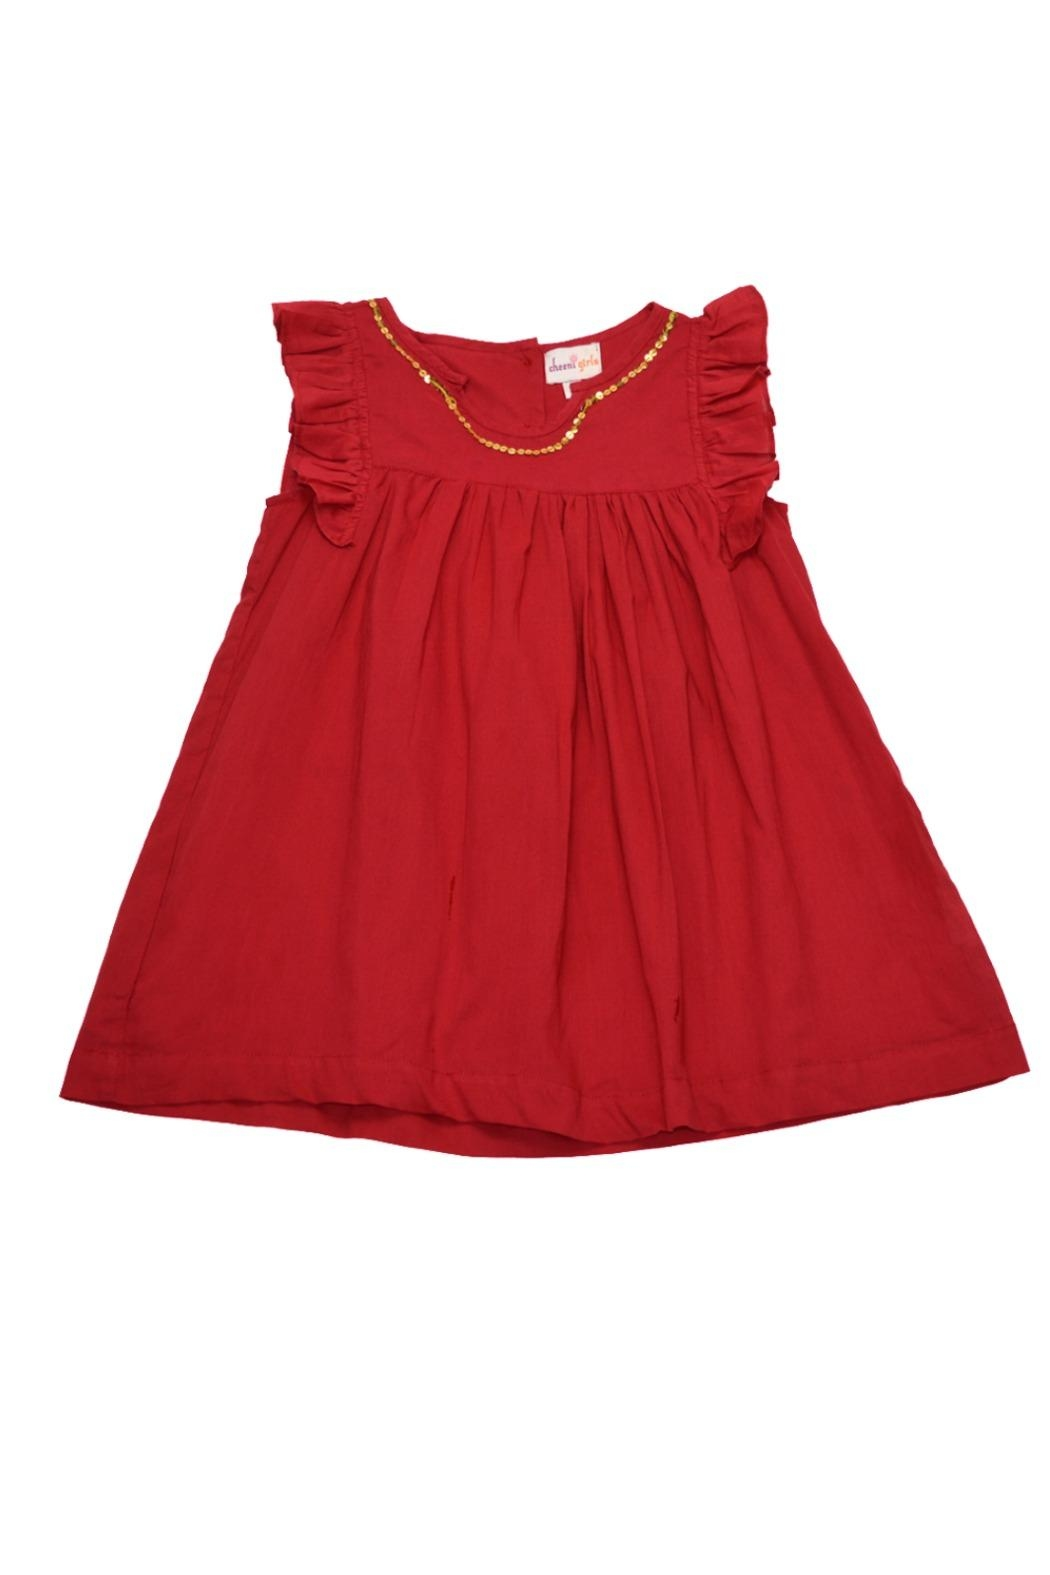 Cheeni Baby Gold-Sequin-Accented Red Dress - Main Image